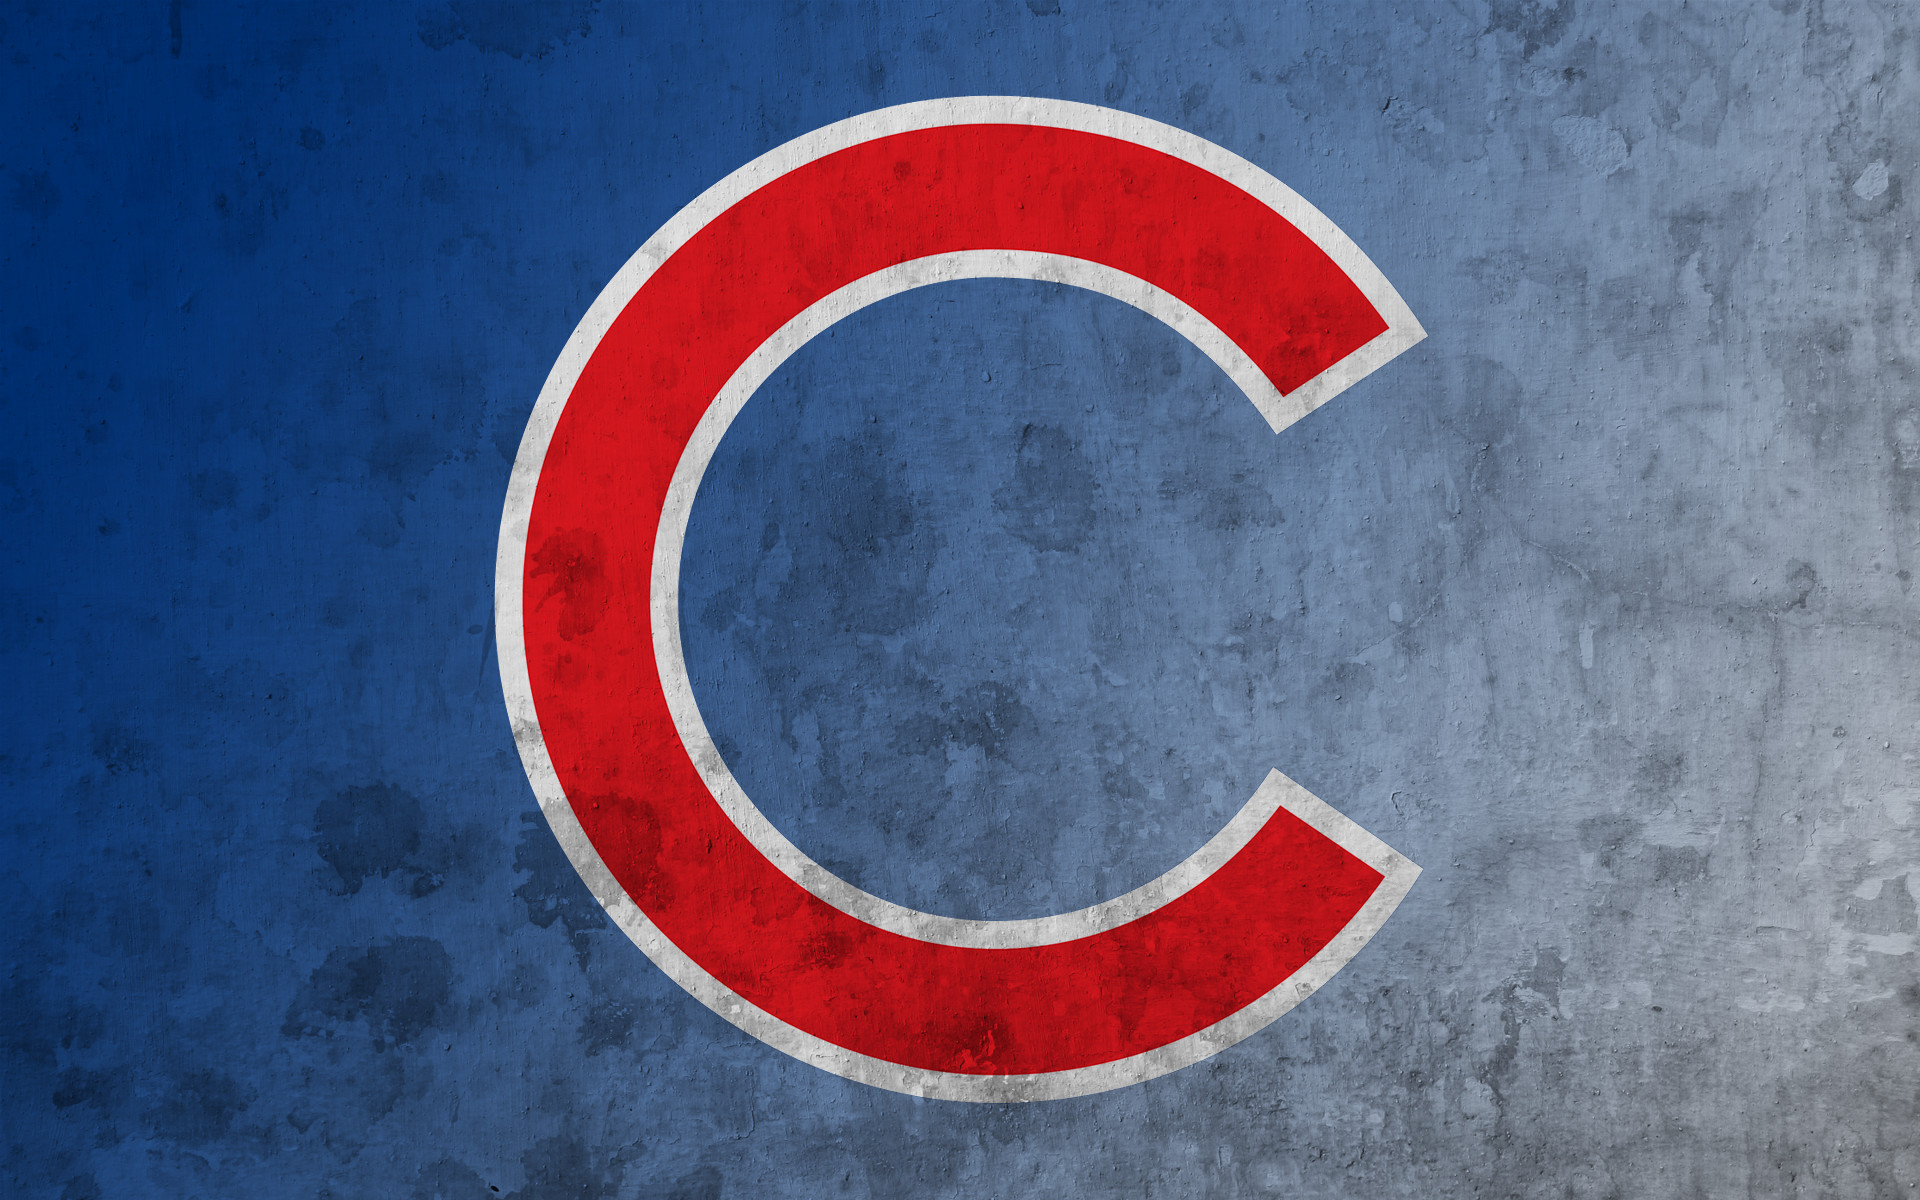 Chicago Cubs Wallpaper Hd: Chicago Cubs Wallpaper HD (69+ Images